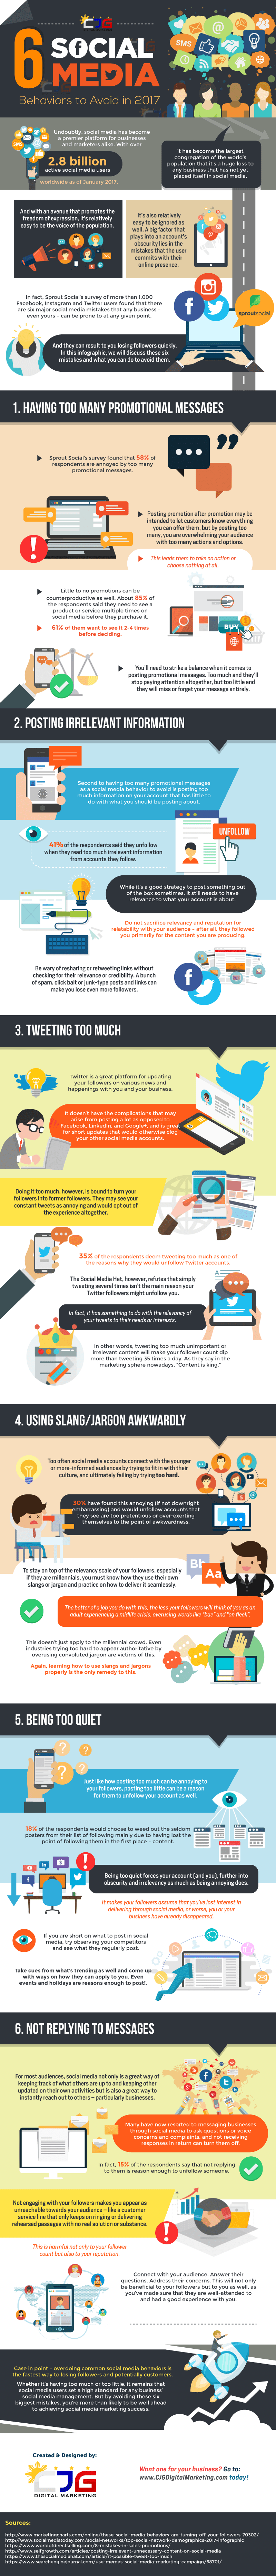 6 Social Media Behaviors to Avoid in 2017 (Infographic) - An Infographic from CJG Digital Marketing